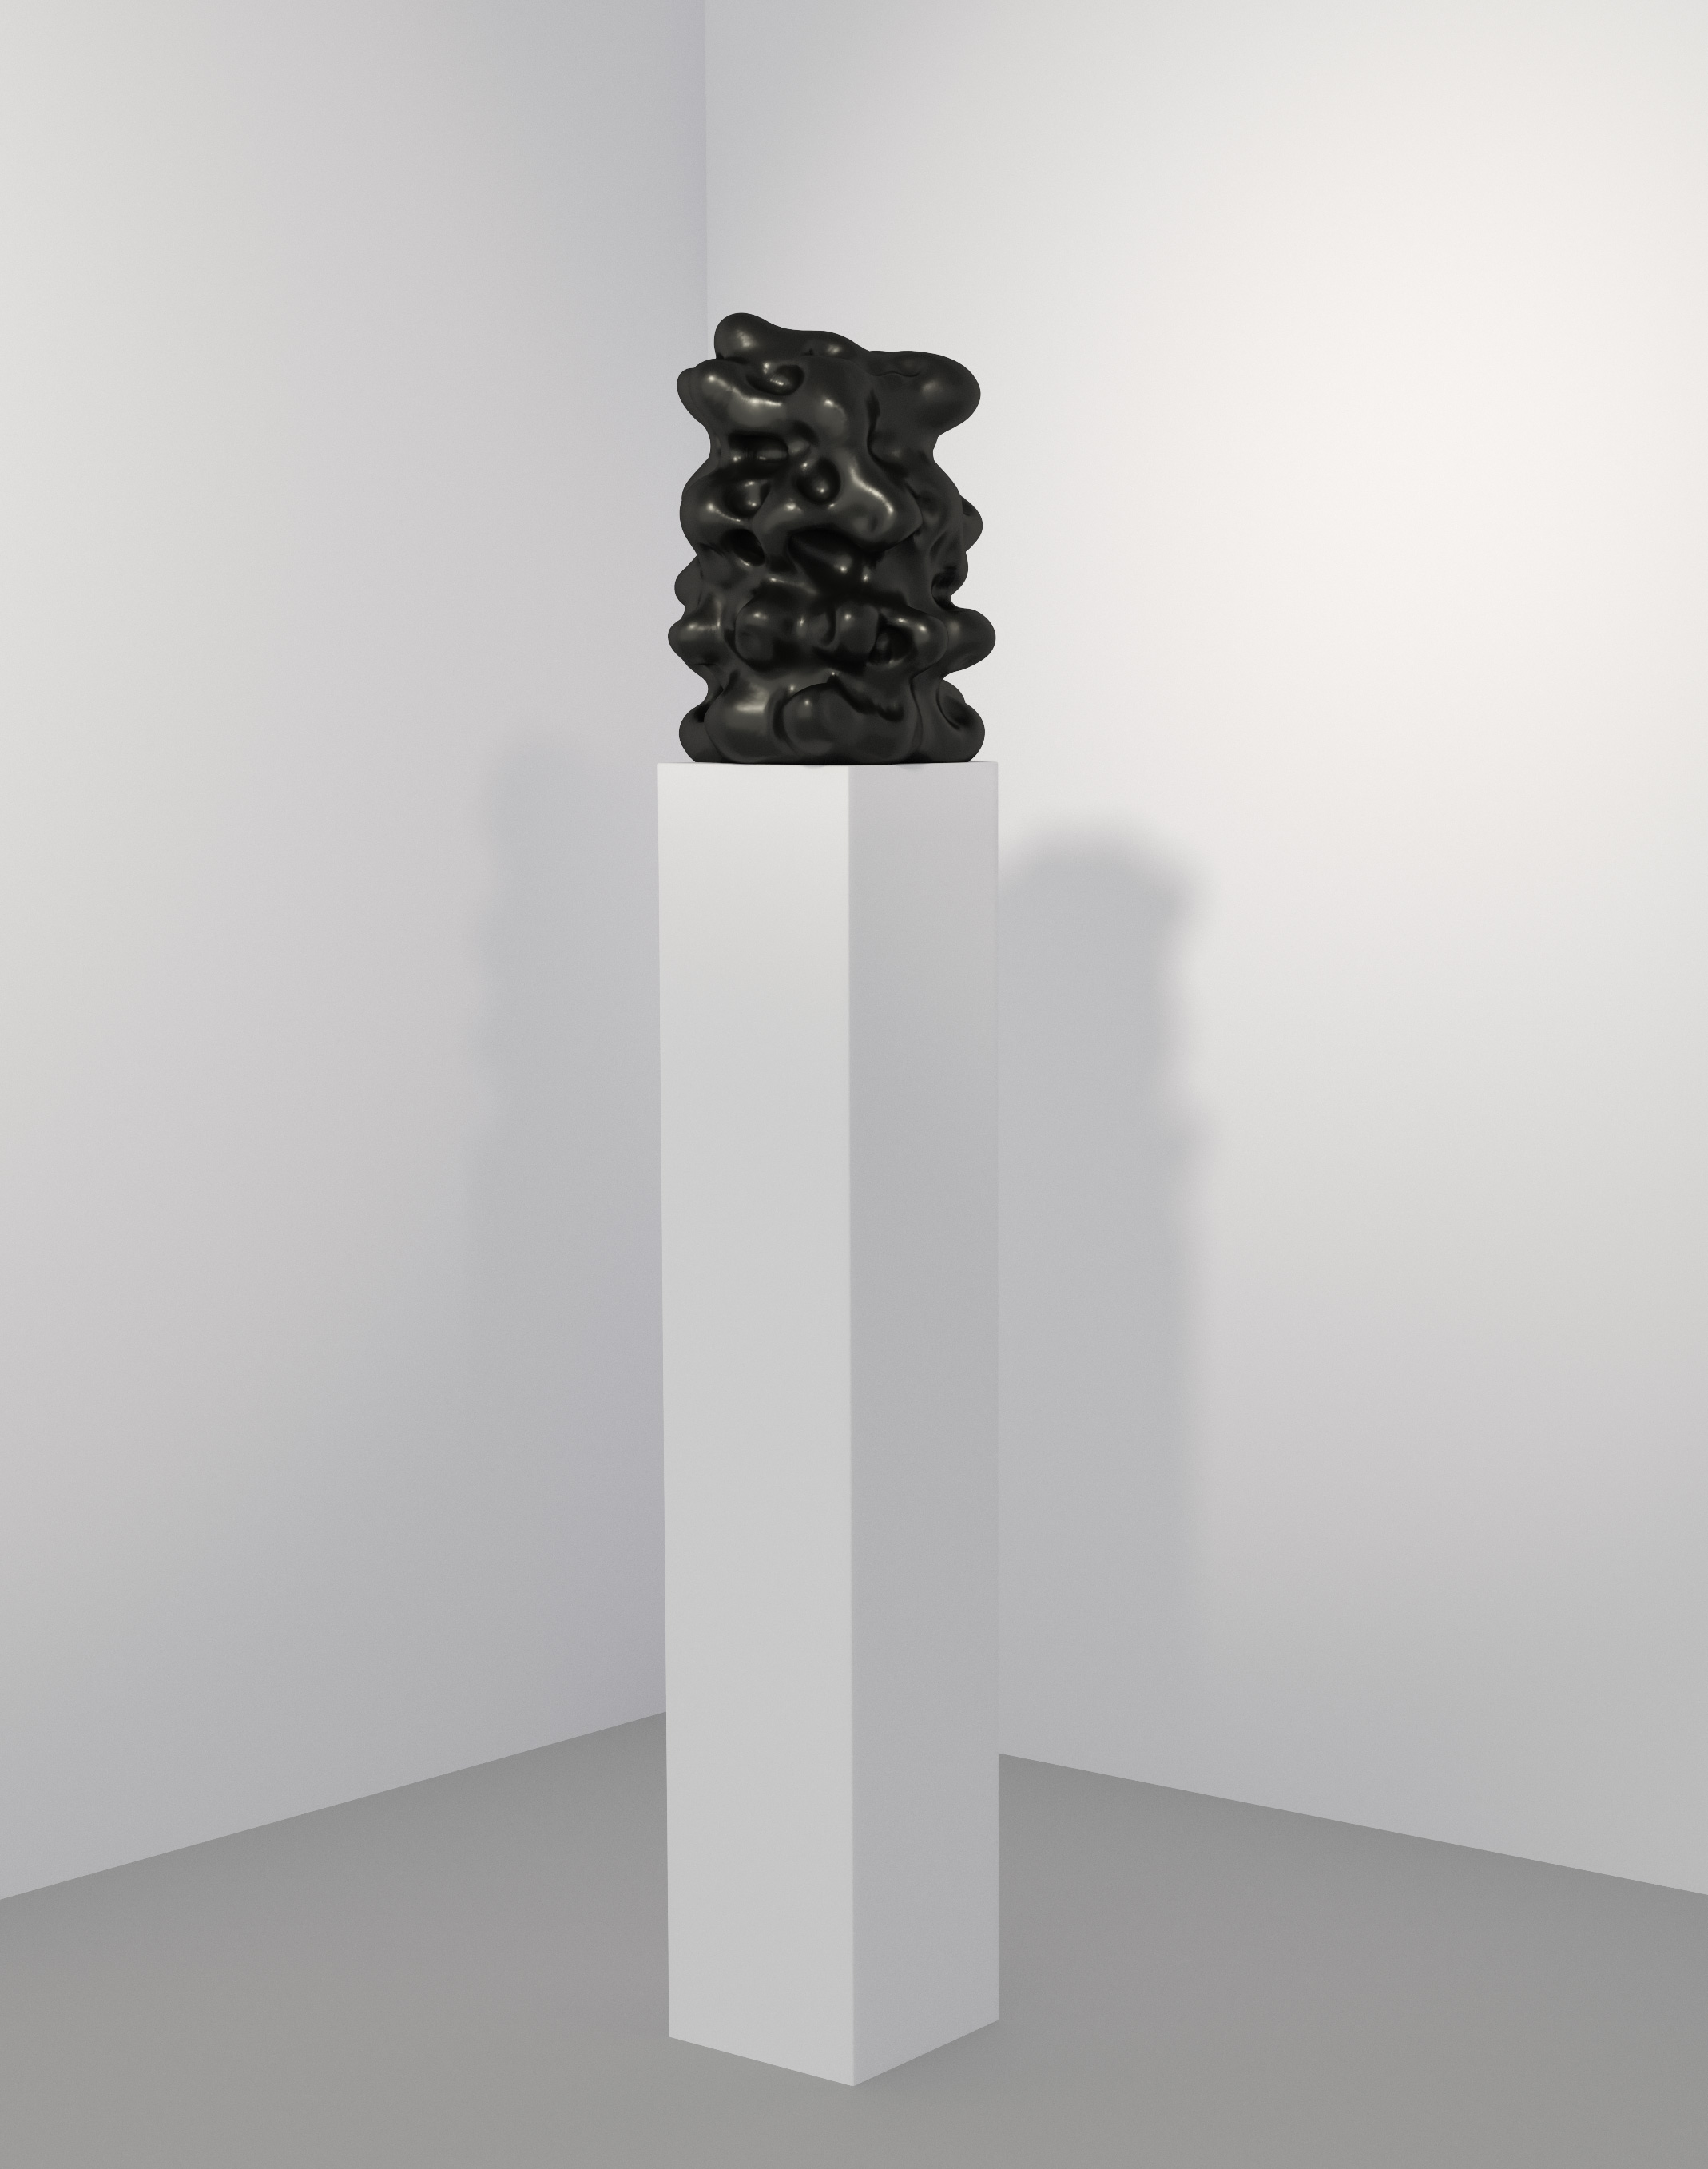 sculpture3(shot2web).jpg